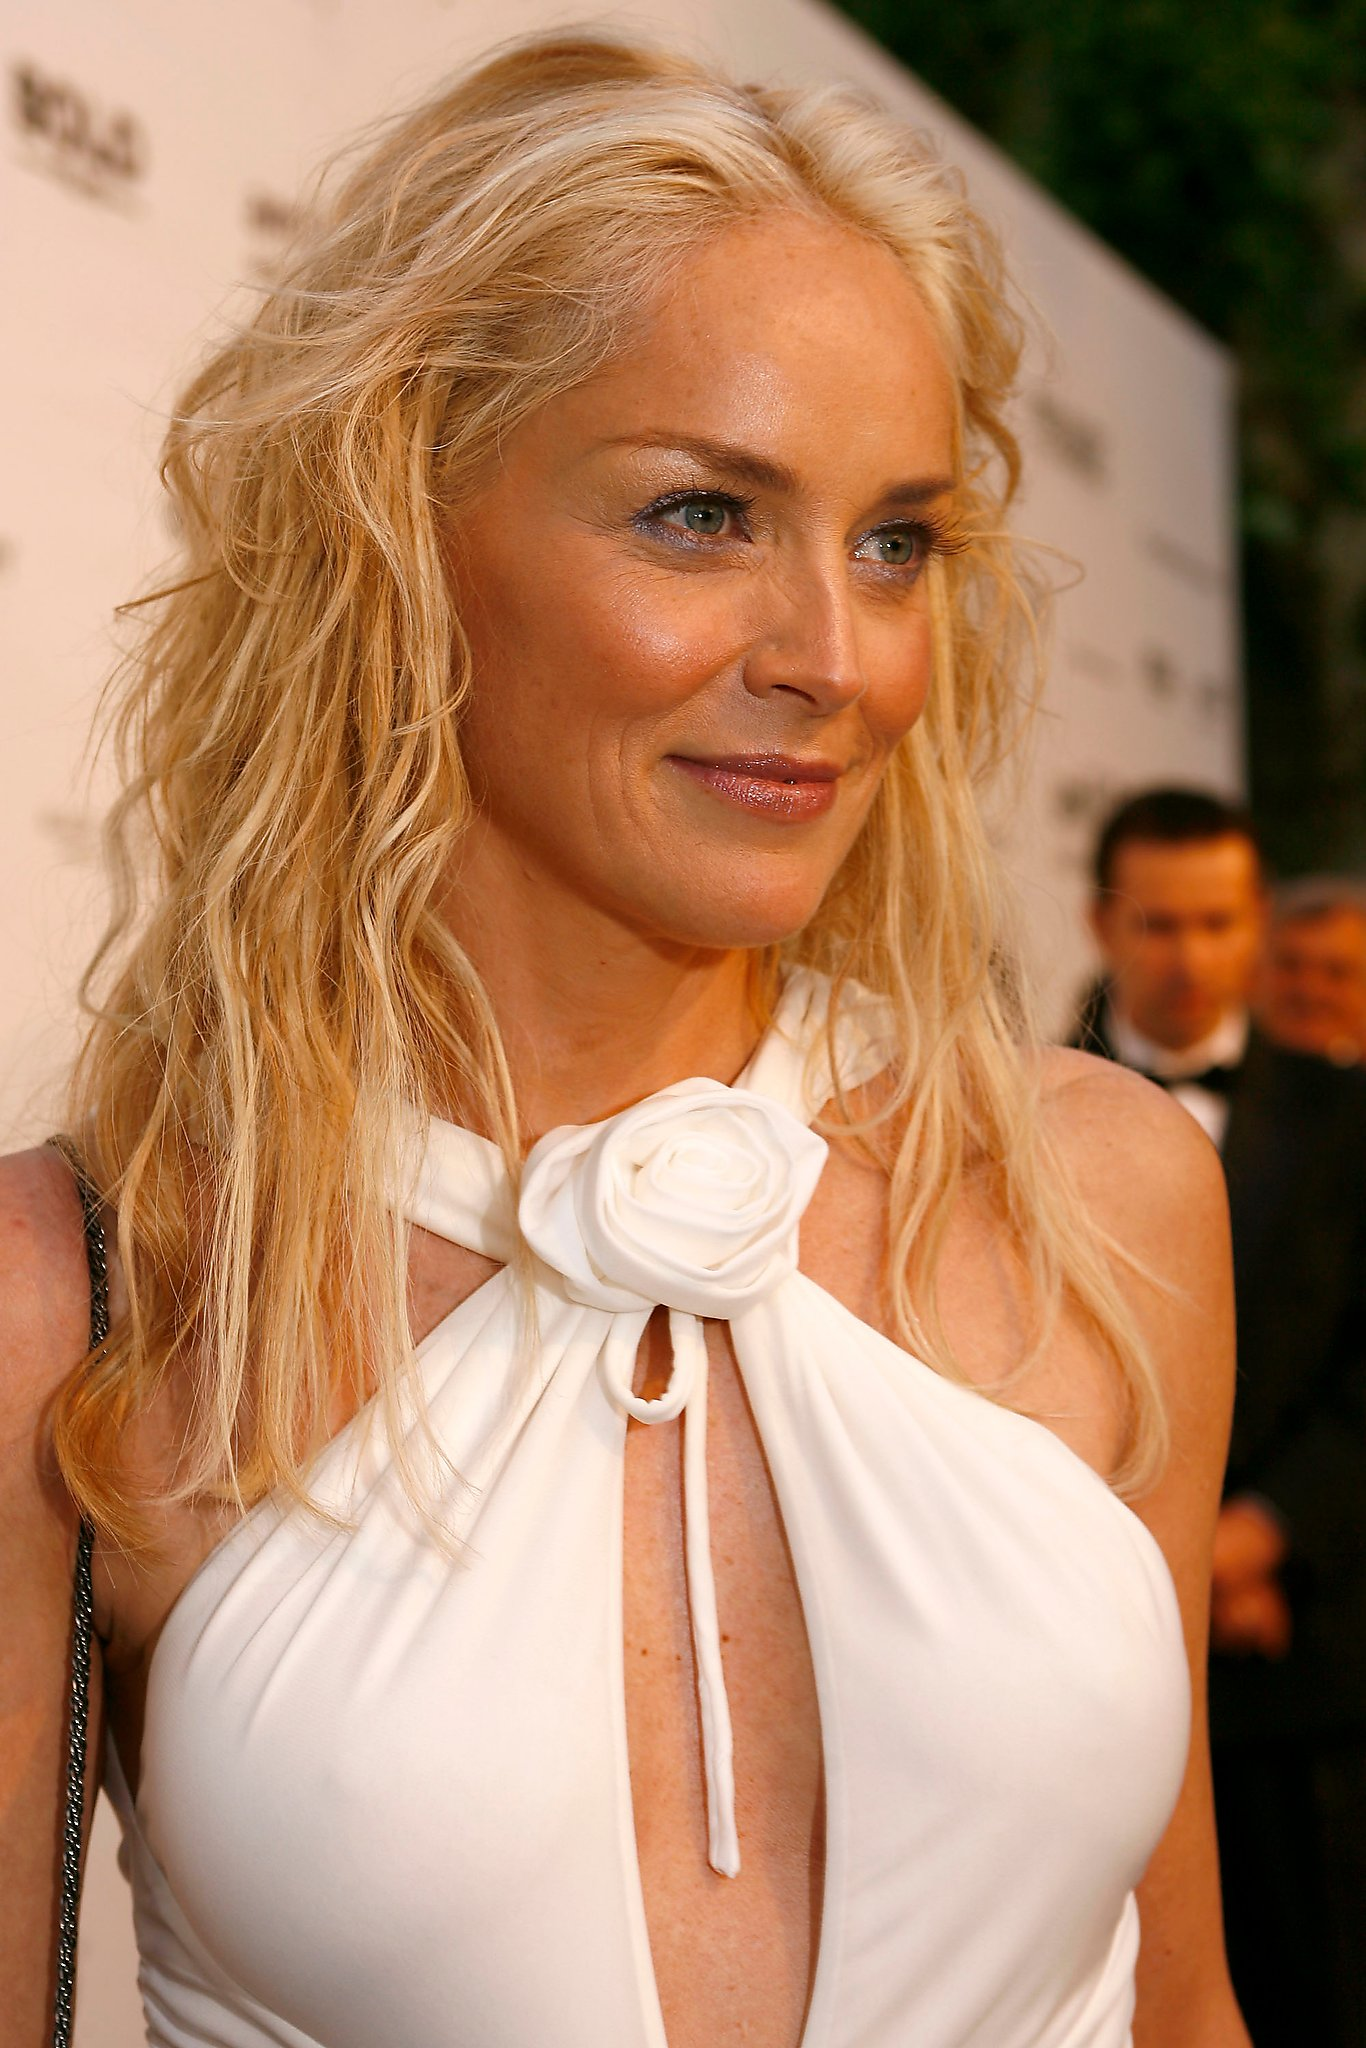 24 Things You Might Not Know About Sharon Stone On Her